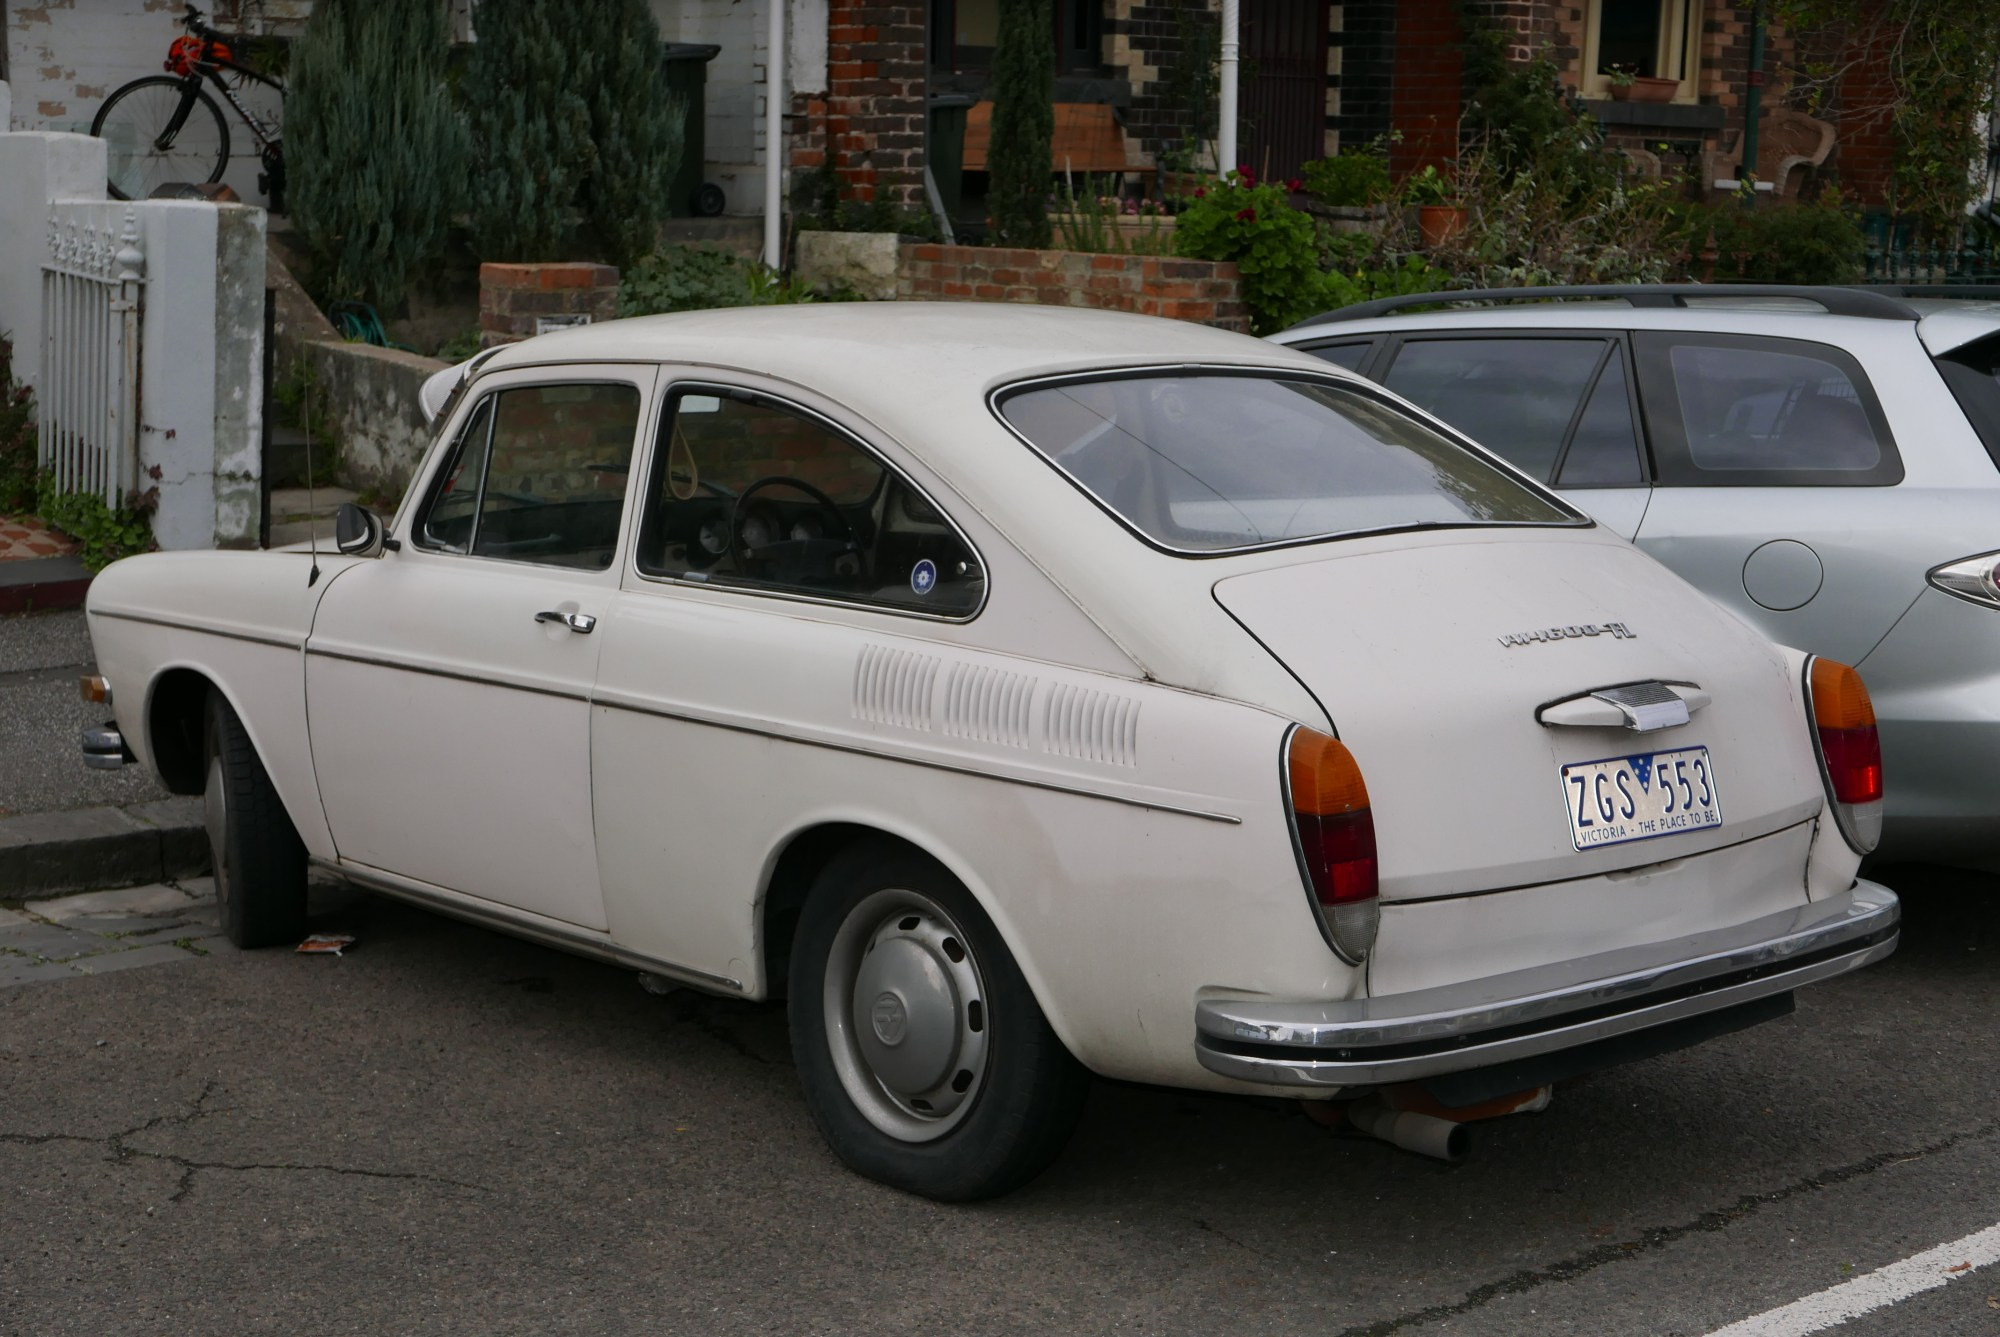 hight resolution of file 1970 volkswagen 1600 type 3 tl fastback sedan 2015 07 14 02 jpg